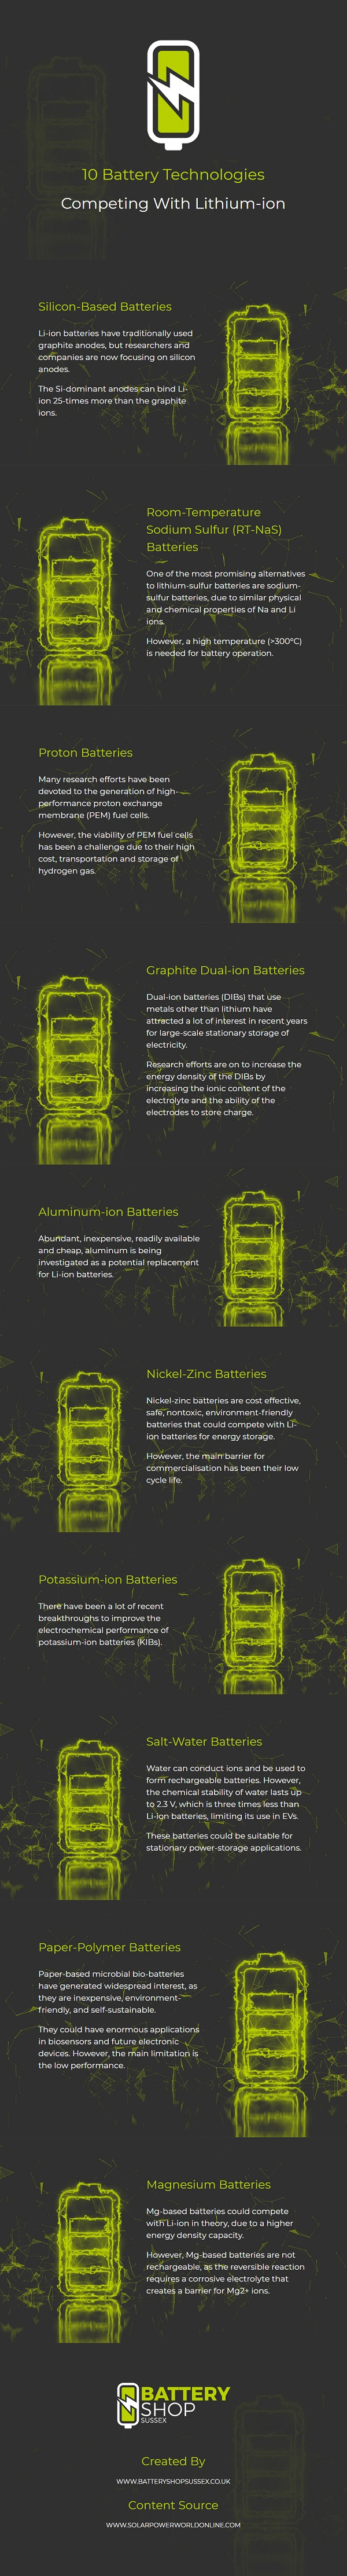 10 Battery Technologies Competing With Lithium-ion